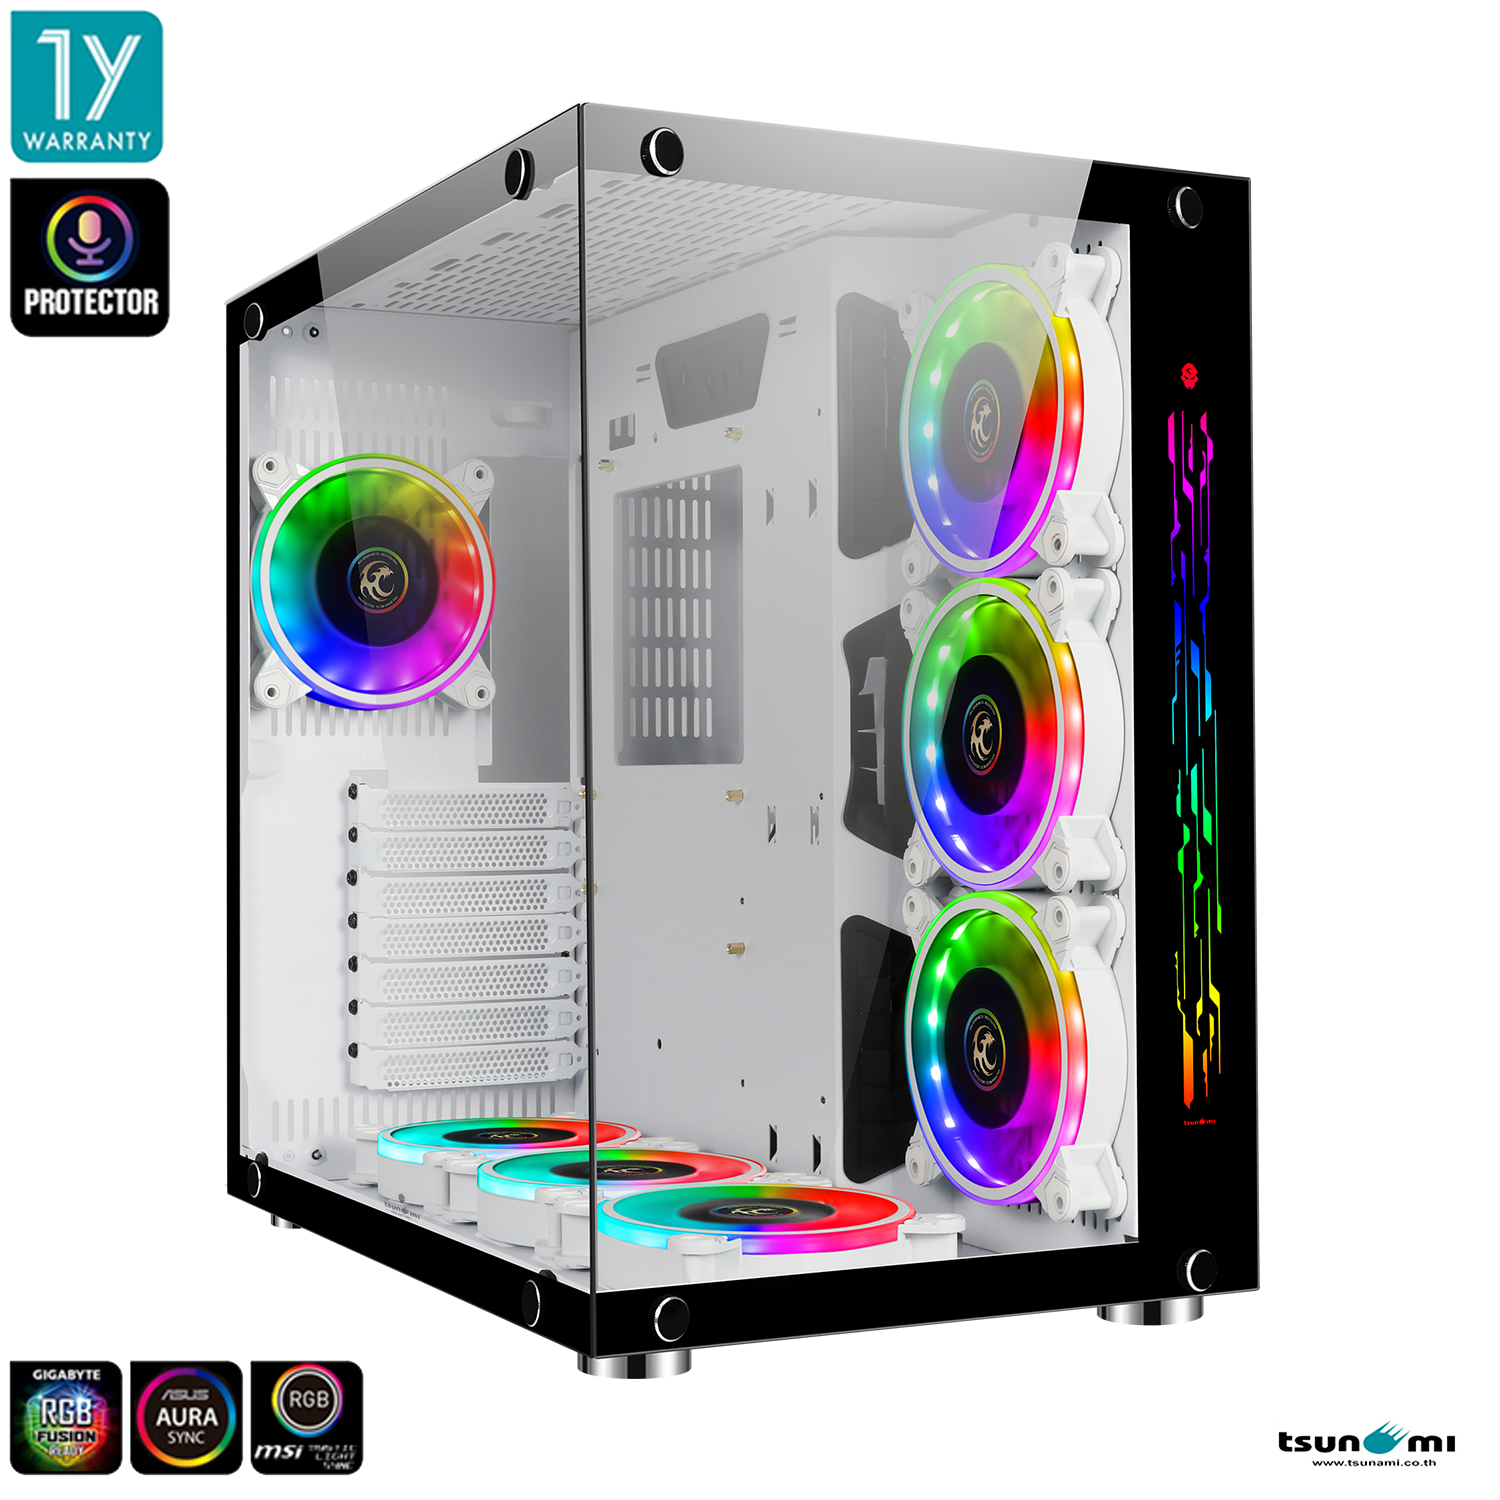 Tsunami Protector Vision Sound Sync Argb Panorama Tempered Glass Atx Gaming Case With Protector 1262 12cm Argb Cooling Fan*7